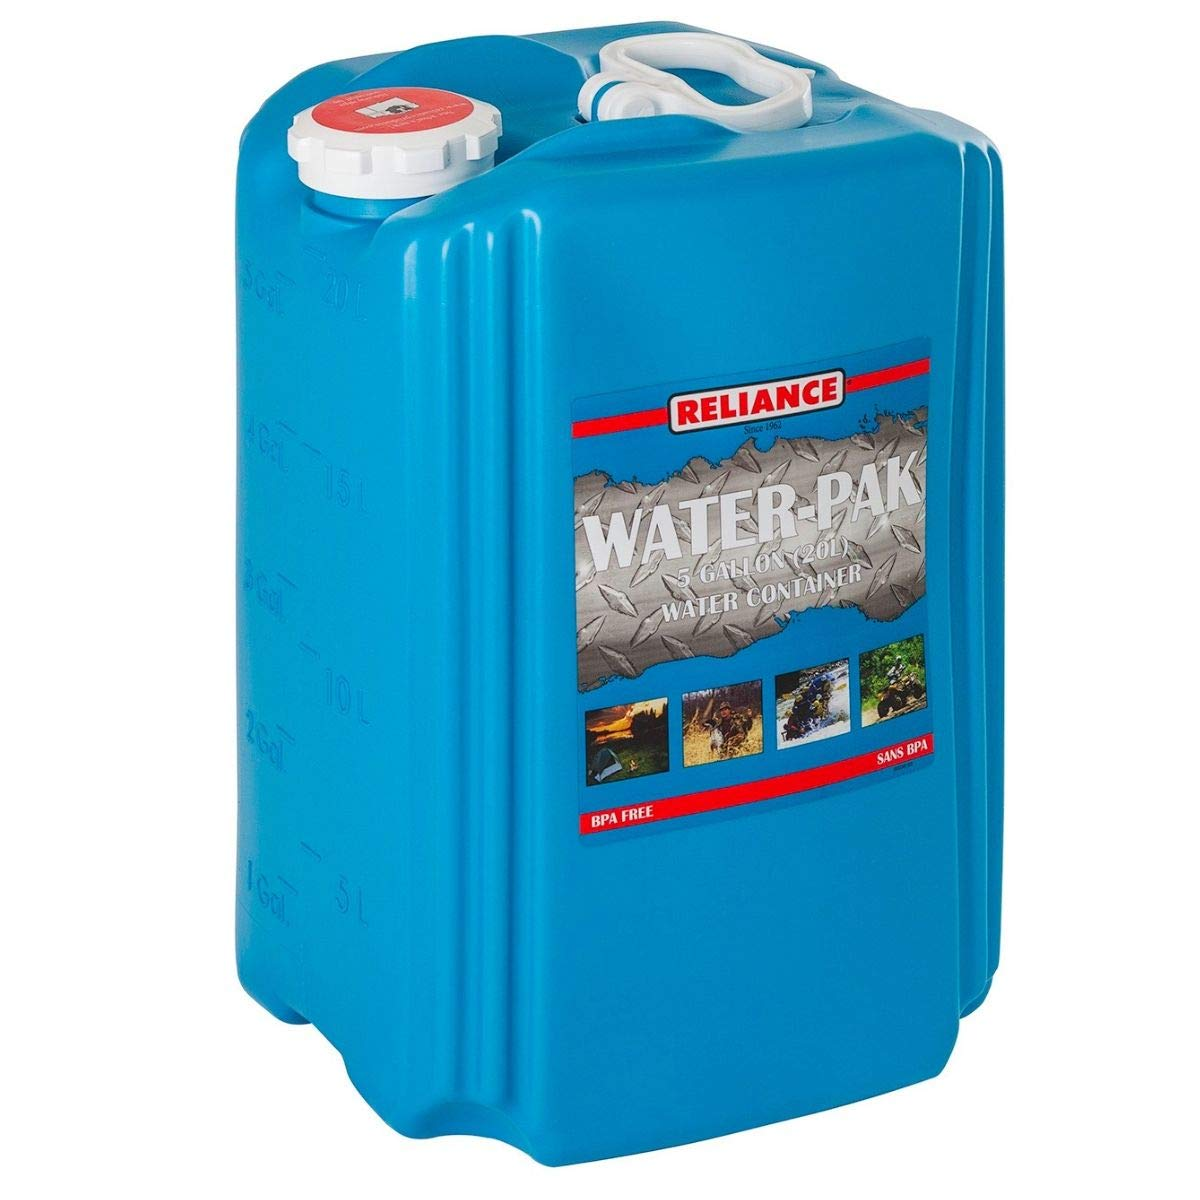 Reliance Aqua-Pak 19L Water Container (5 Gal,11.59 x 9.13 x 15.38 Inches, 2 Packs) by Reliance Products